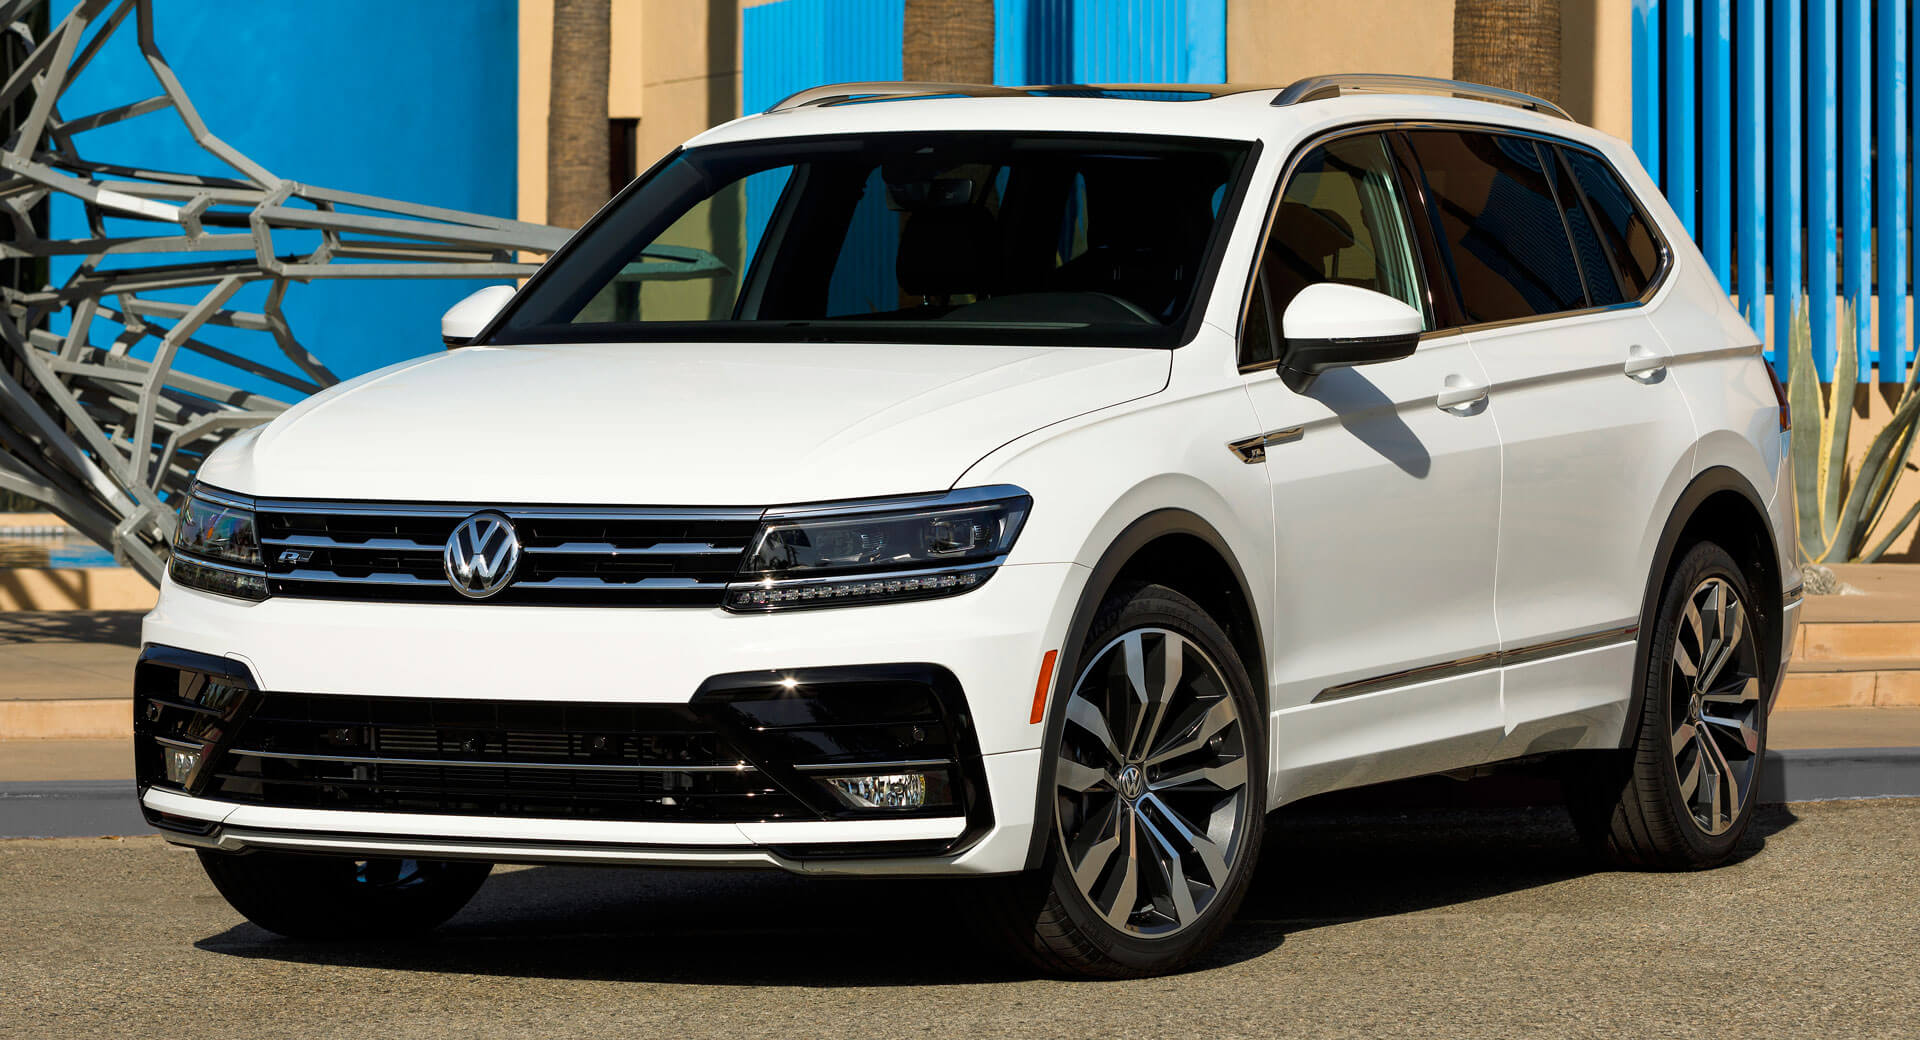 2018 Vw Tiguan And Touran Recalled Worldwide Over Possible Fire Risk Carscoops